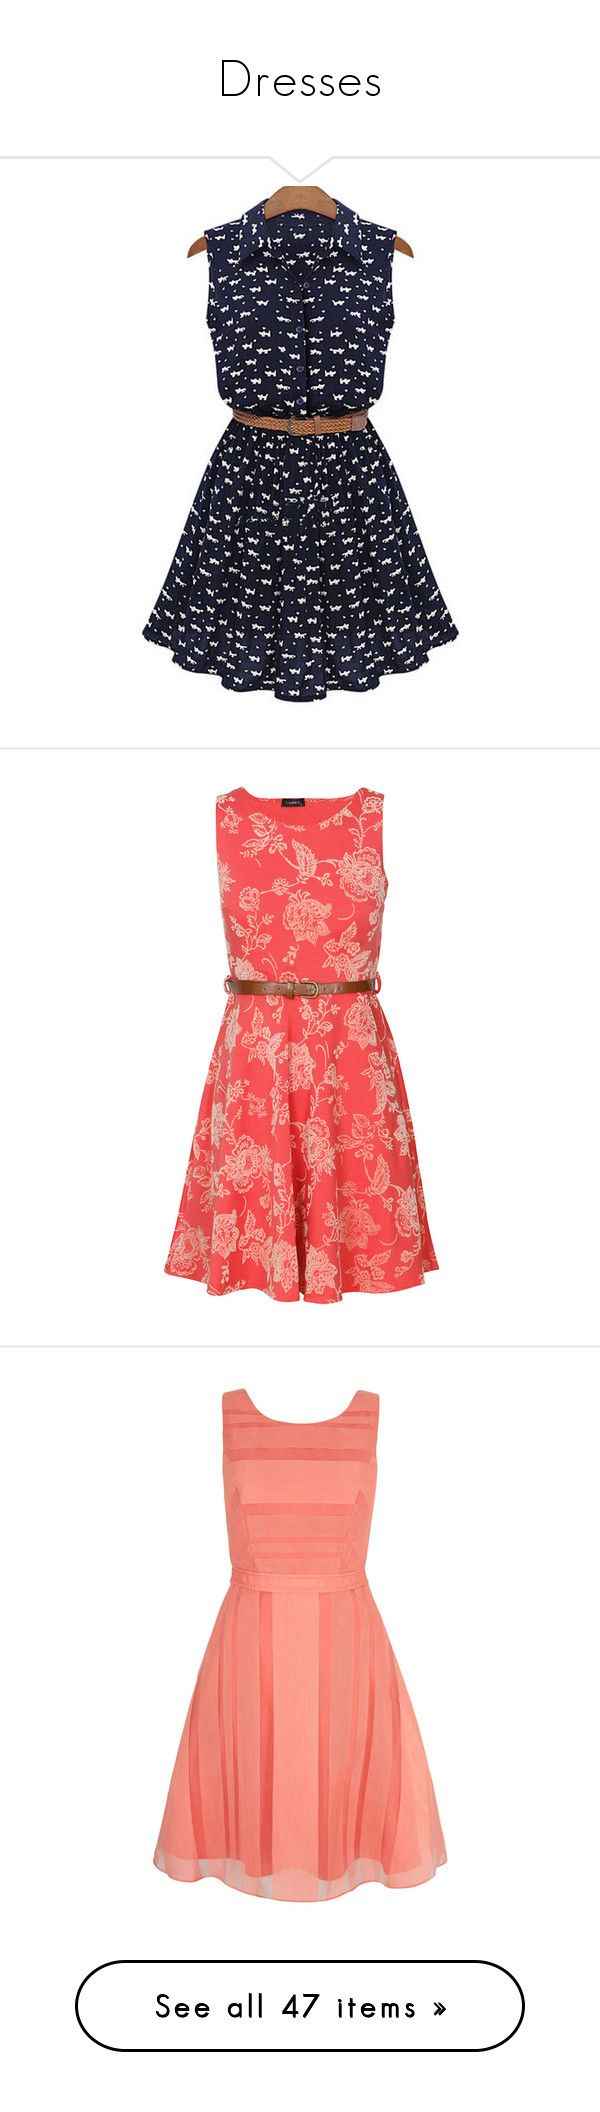 """""""Dresses"""" by missbeth1897 ❤ liked on Polyvore featuring dresses, vestidos, robe, t-shirt dresses, cat print dress, shirt dresses, navy blue short dress, short sleeve dress, coral dresses and pink skater dress"""